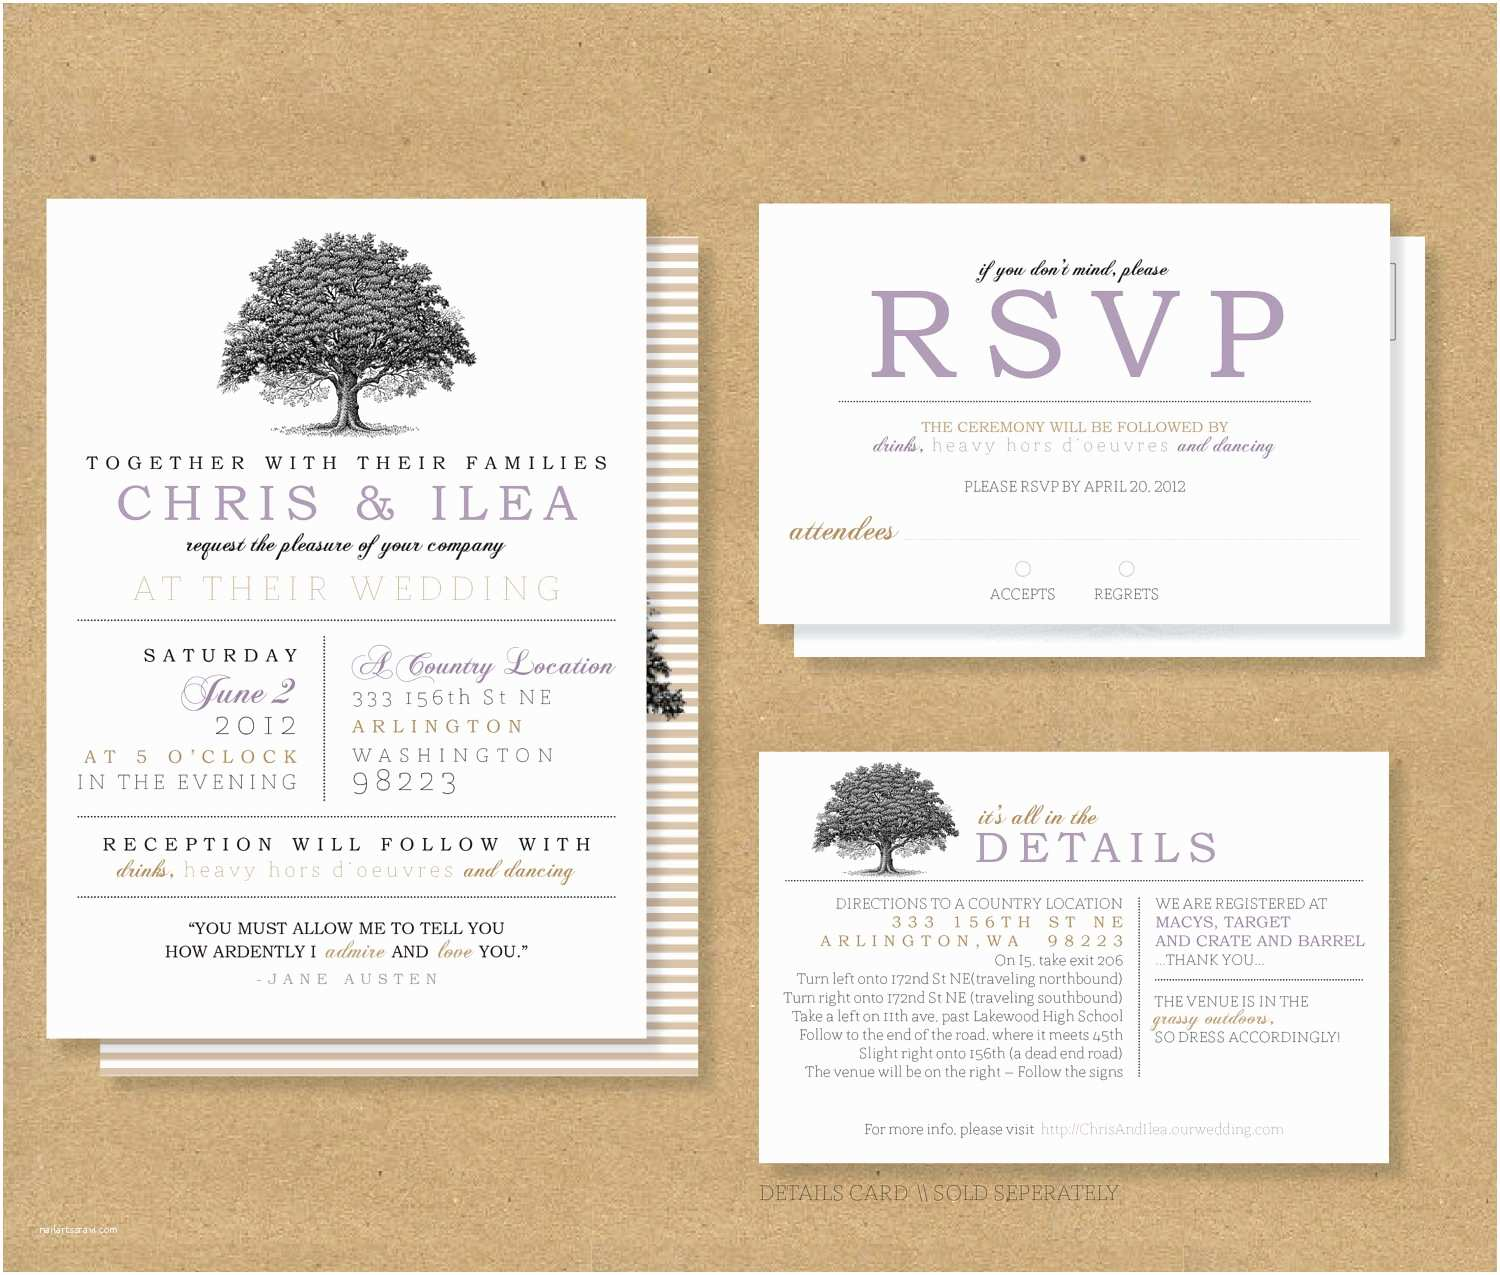 How to Print Out Wedding Invitations Wedding Invitations with Rsvp Sansalvaje